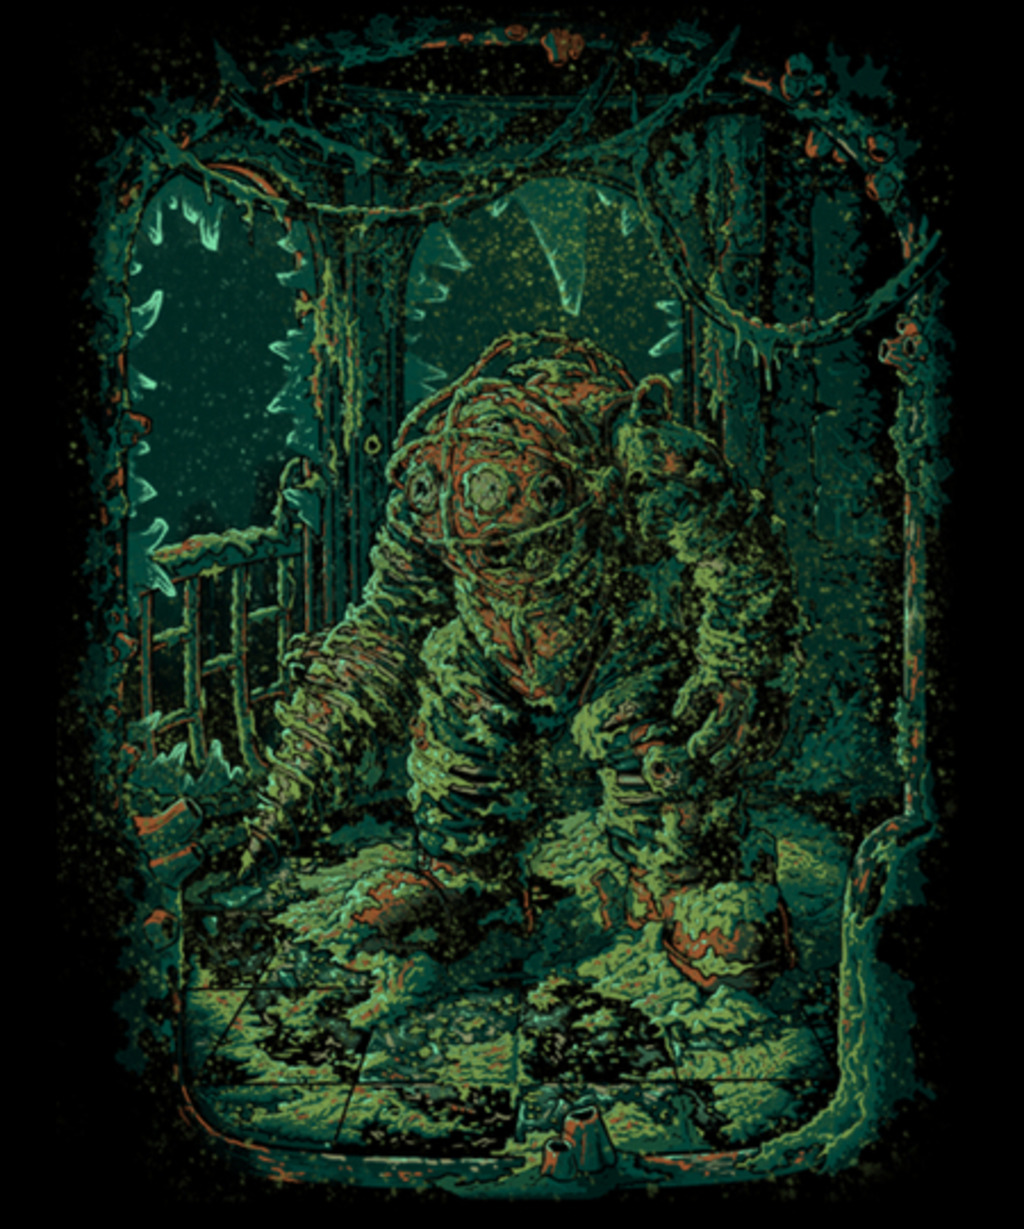 Qwertee: Remember me?